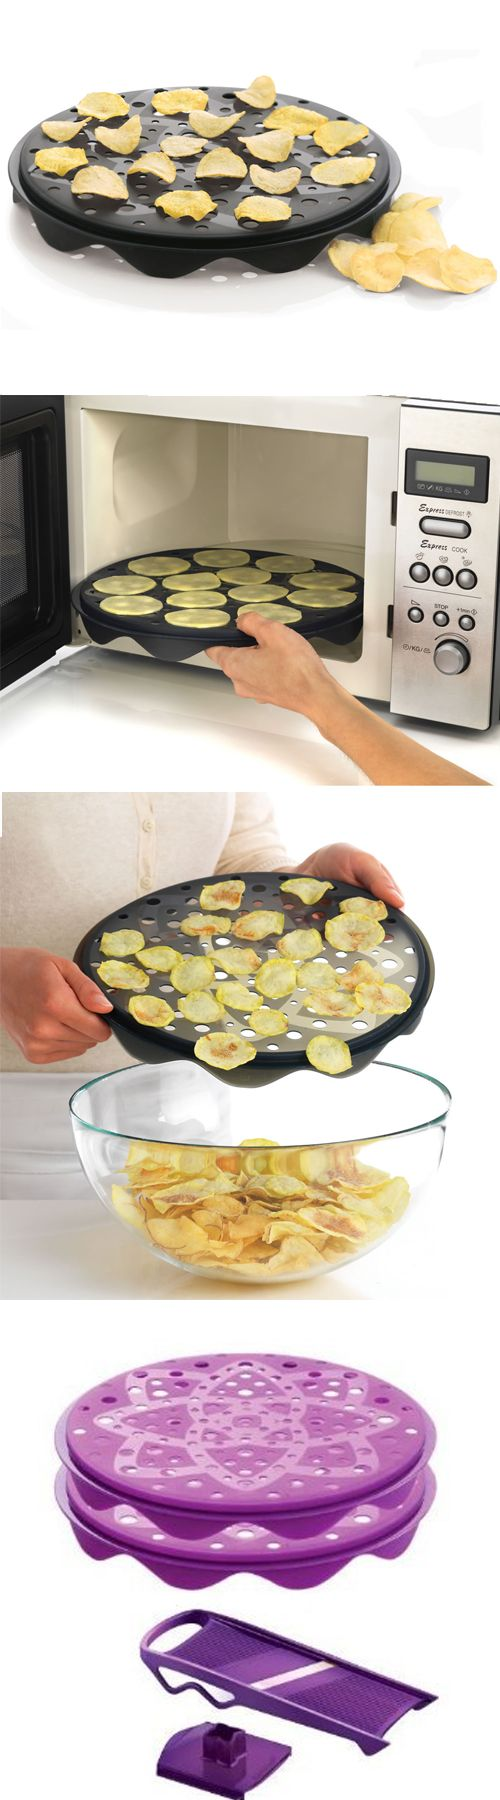 Oil Free Chips Maker Set Great calorie reducer!